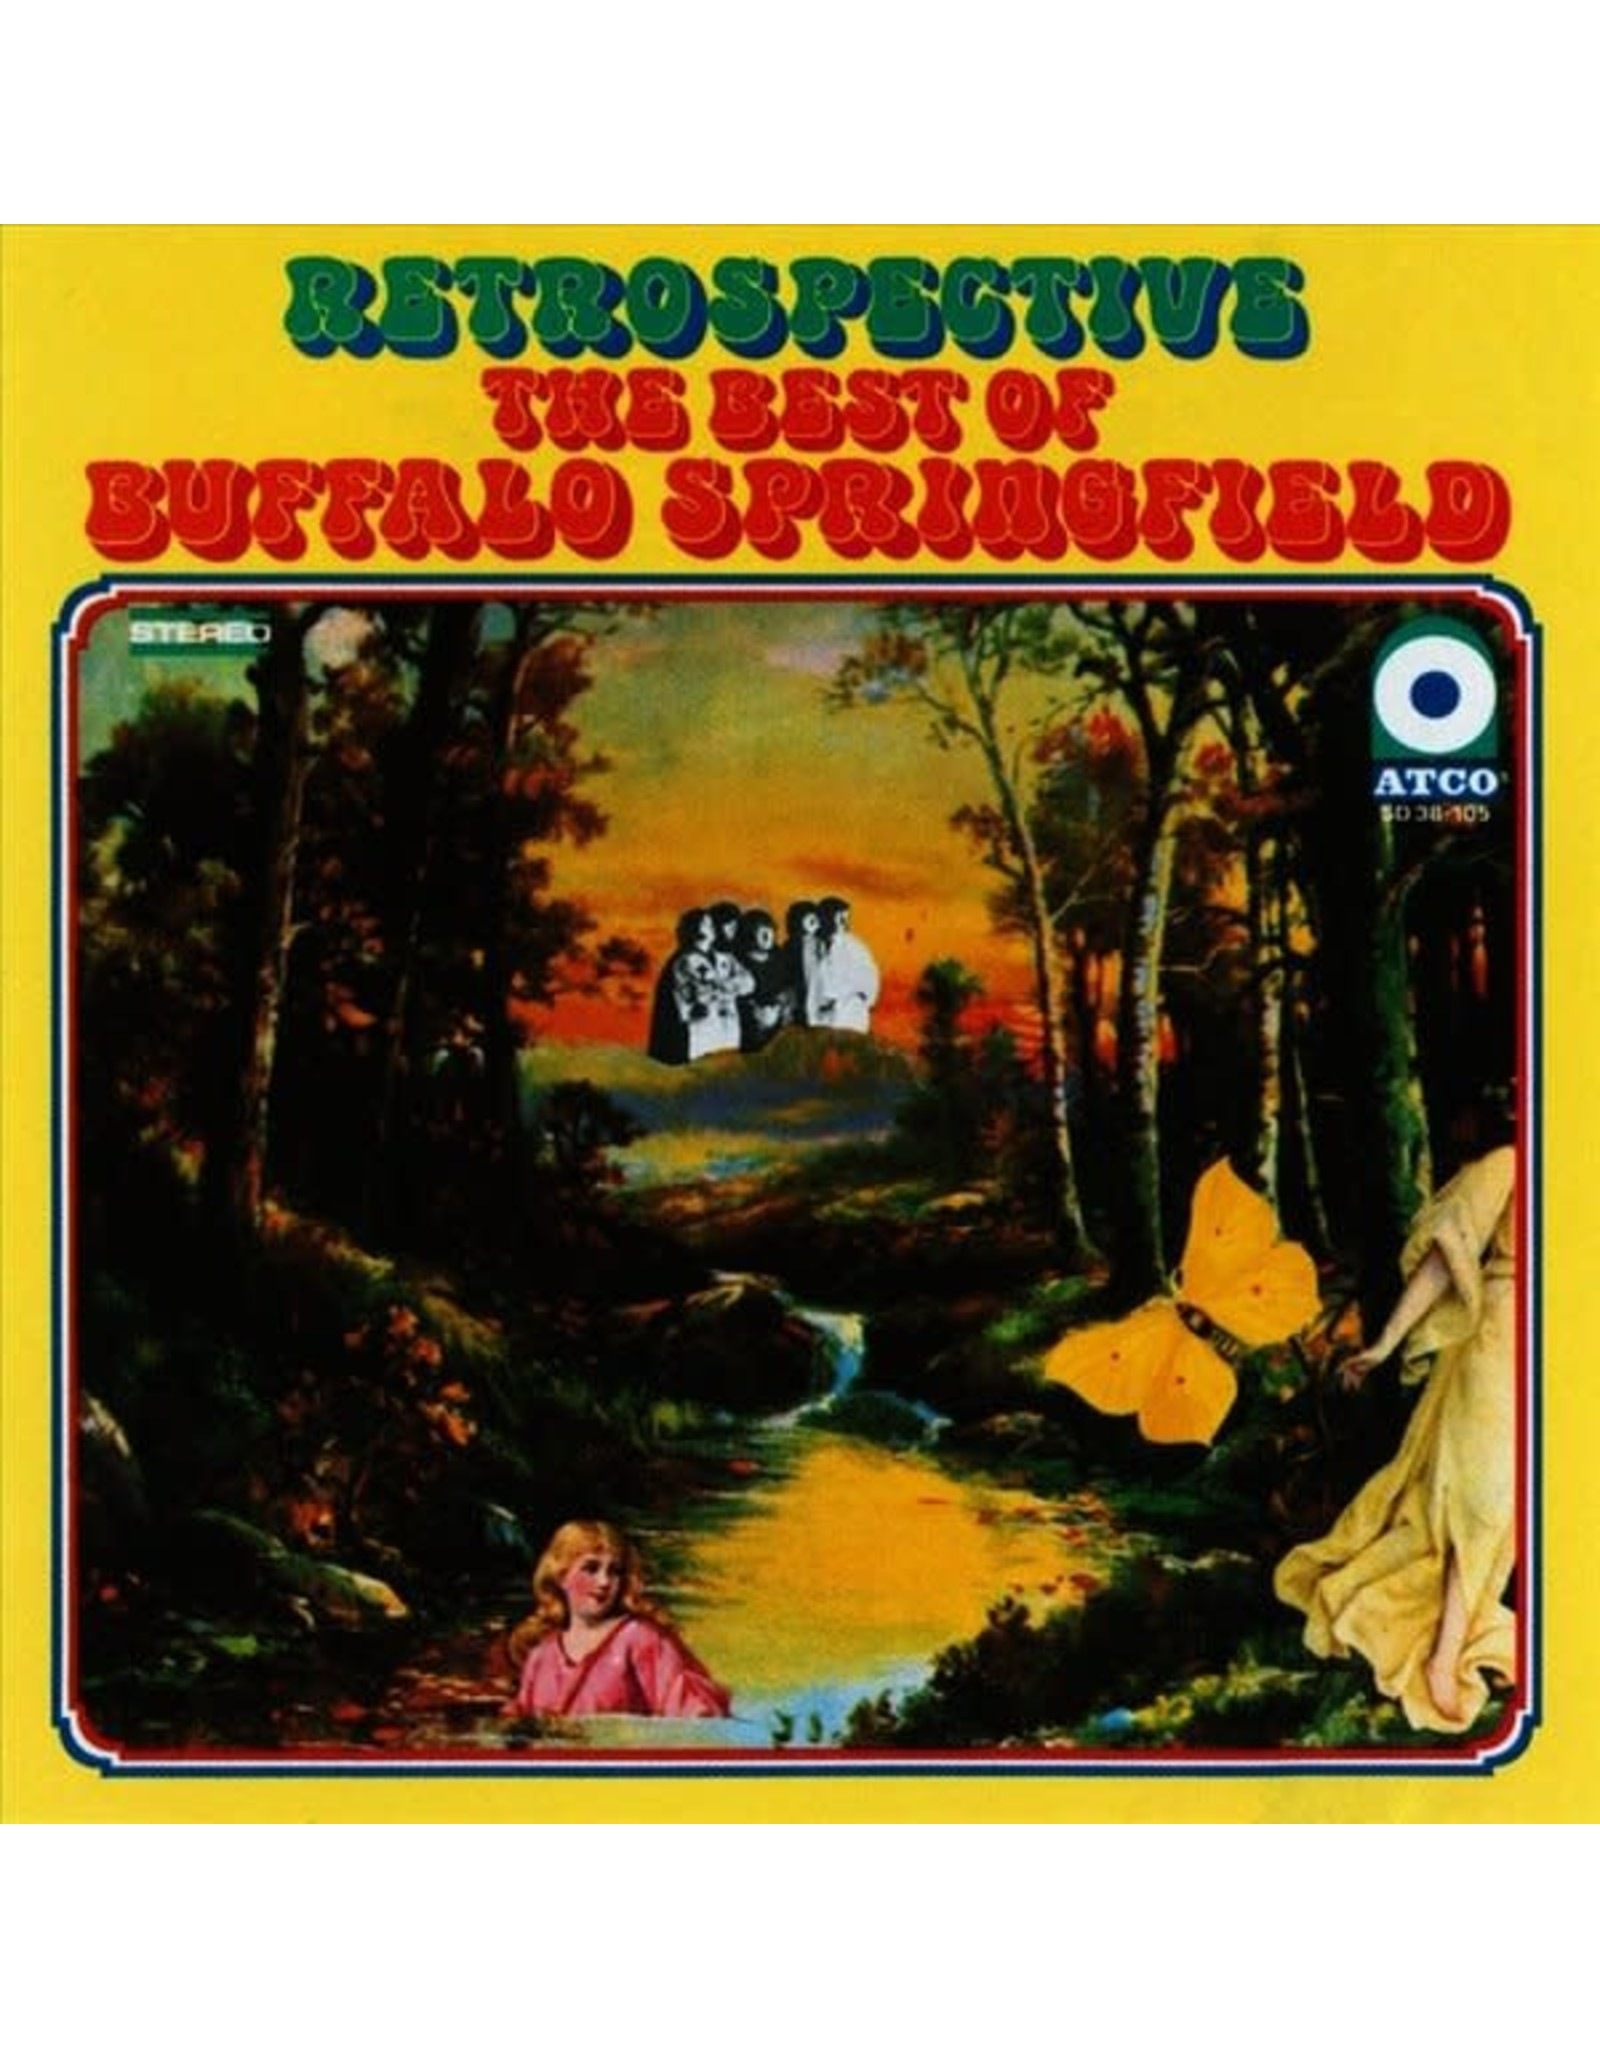 Buffalo Springfield - Retrospective: The Best Of Buffalo Springfield LP